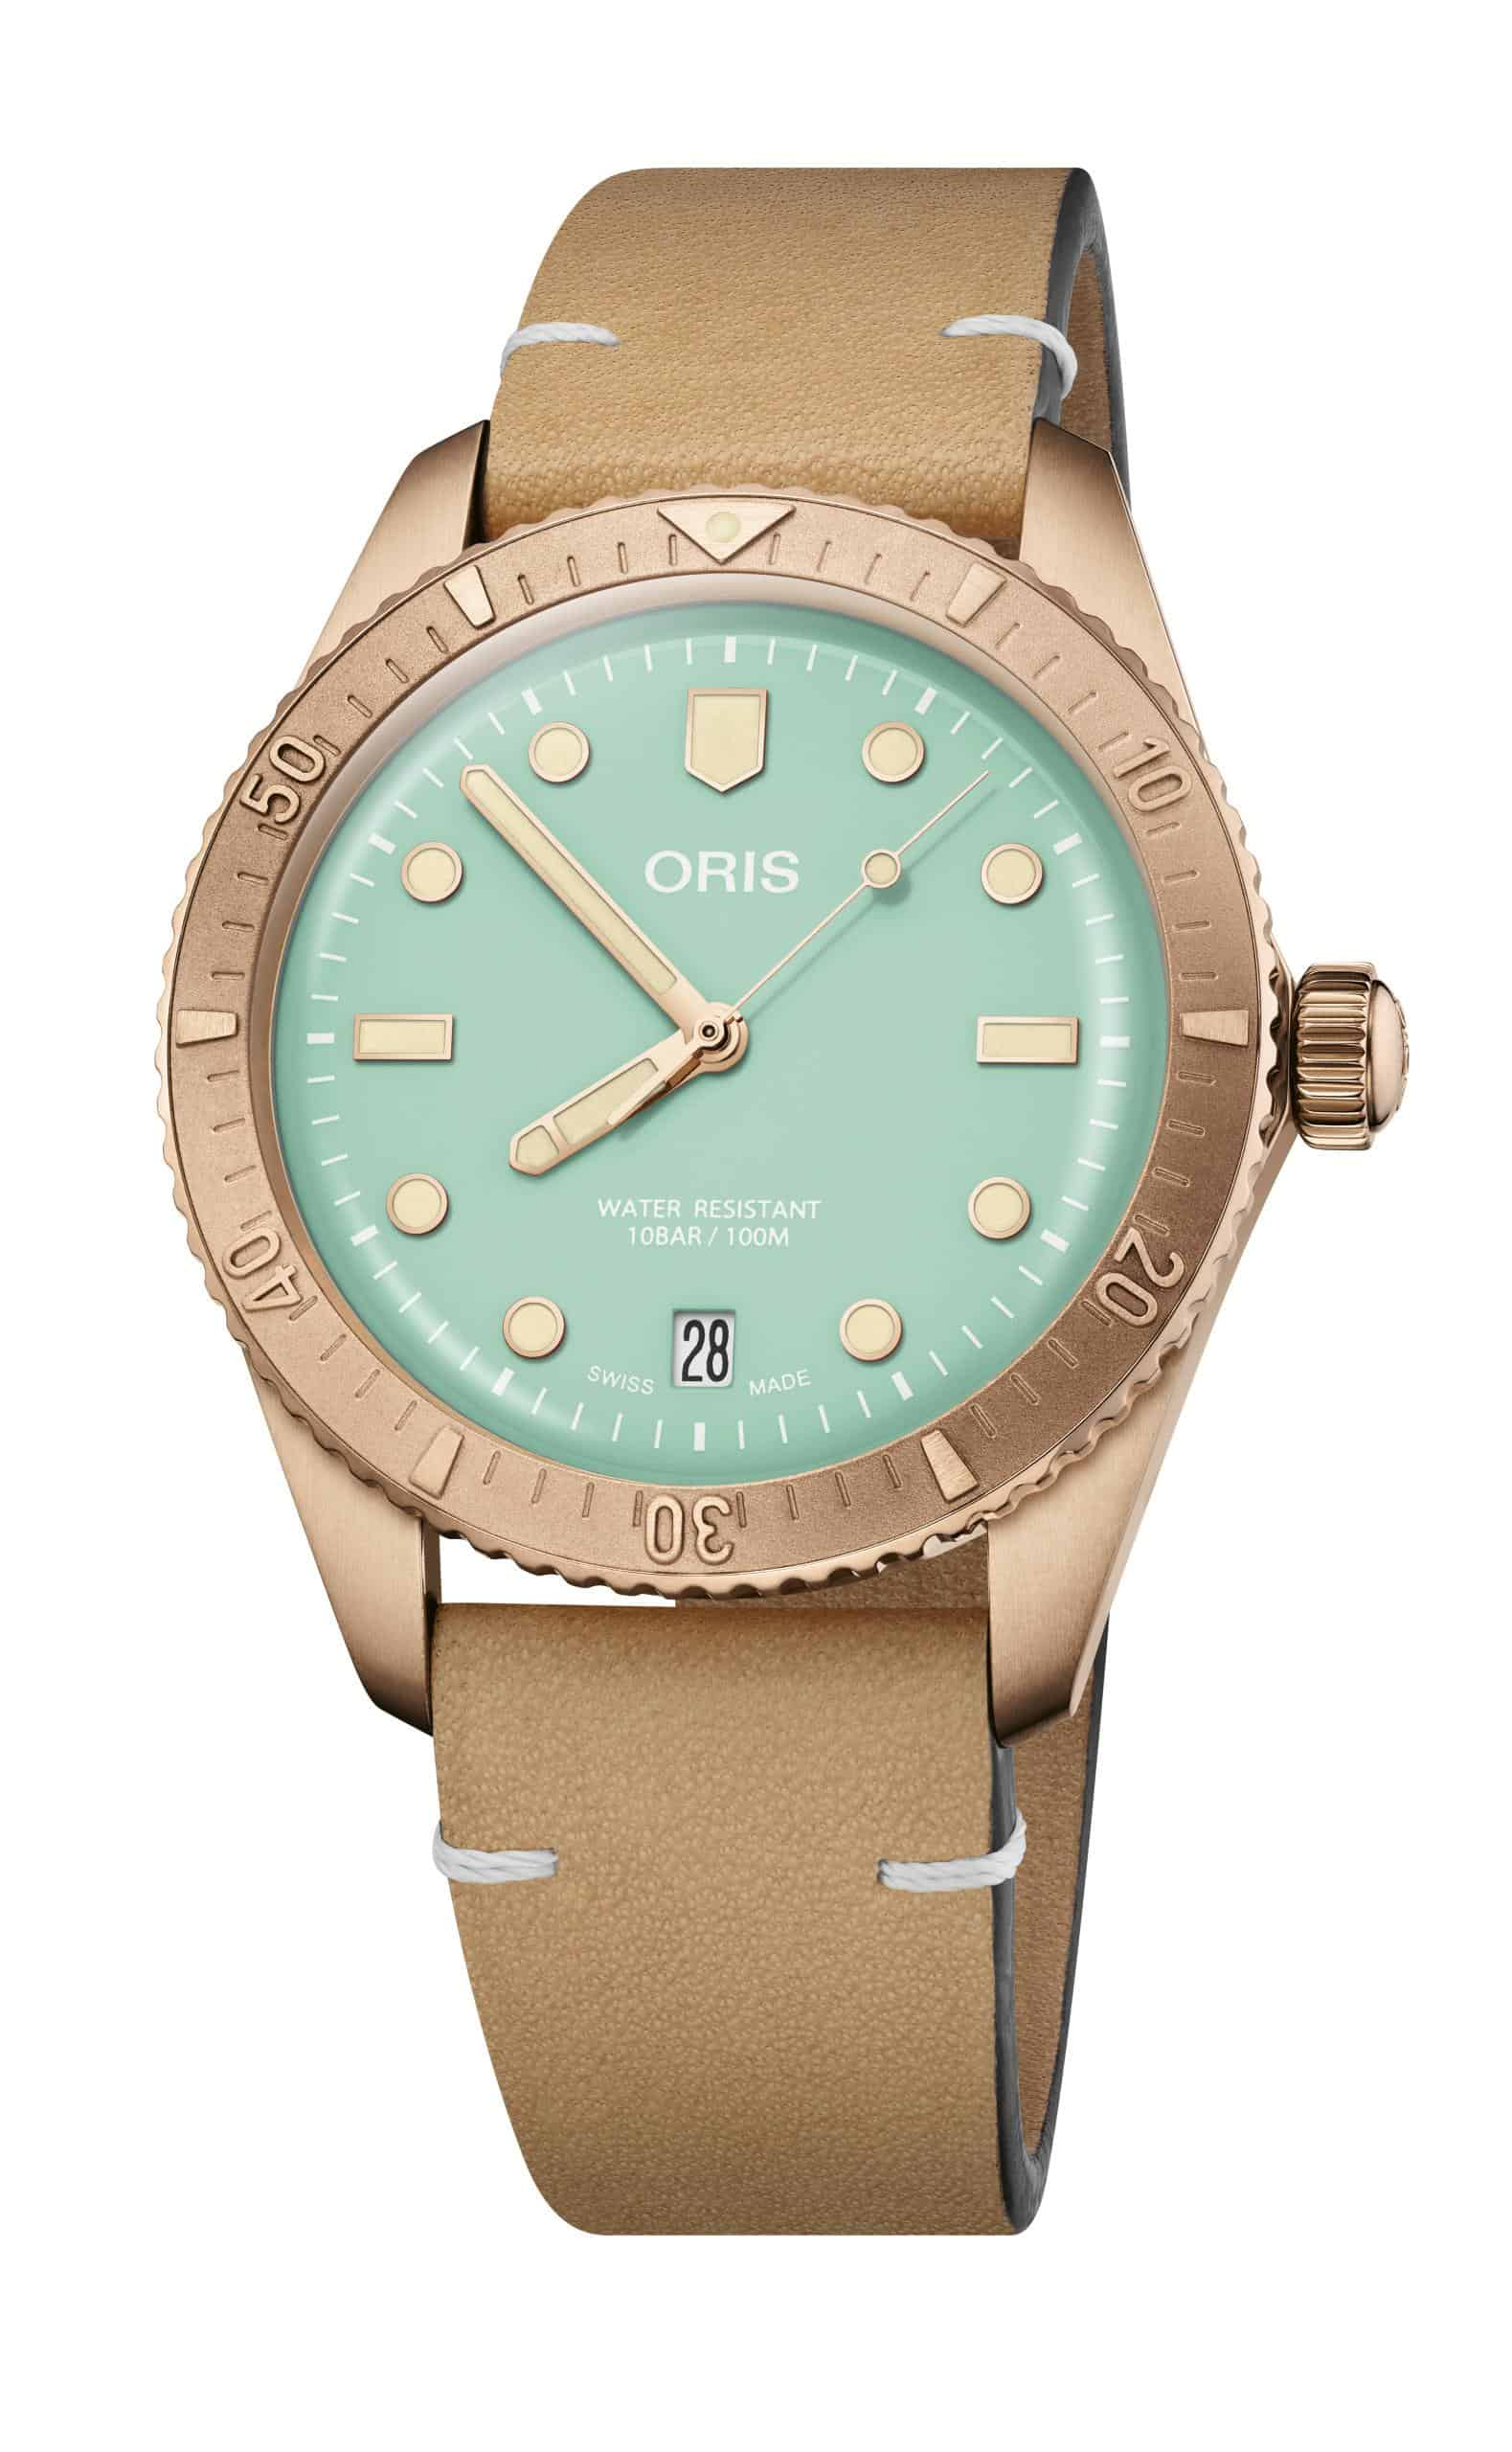 Oris Divers Sixty Five Cotton Candy Mint-grünes Zifferblatt